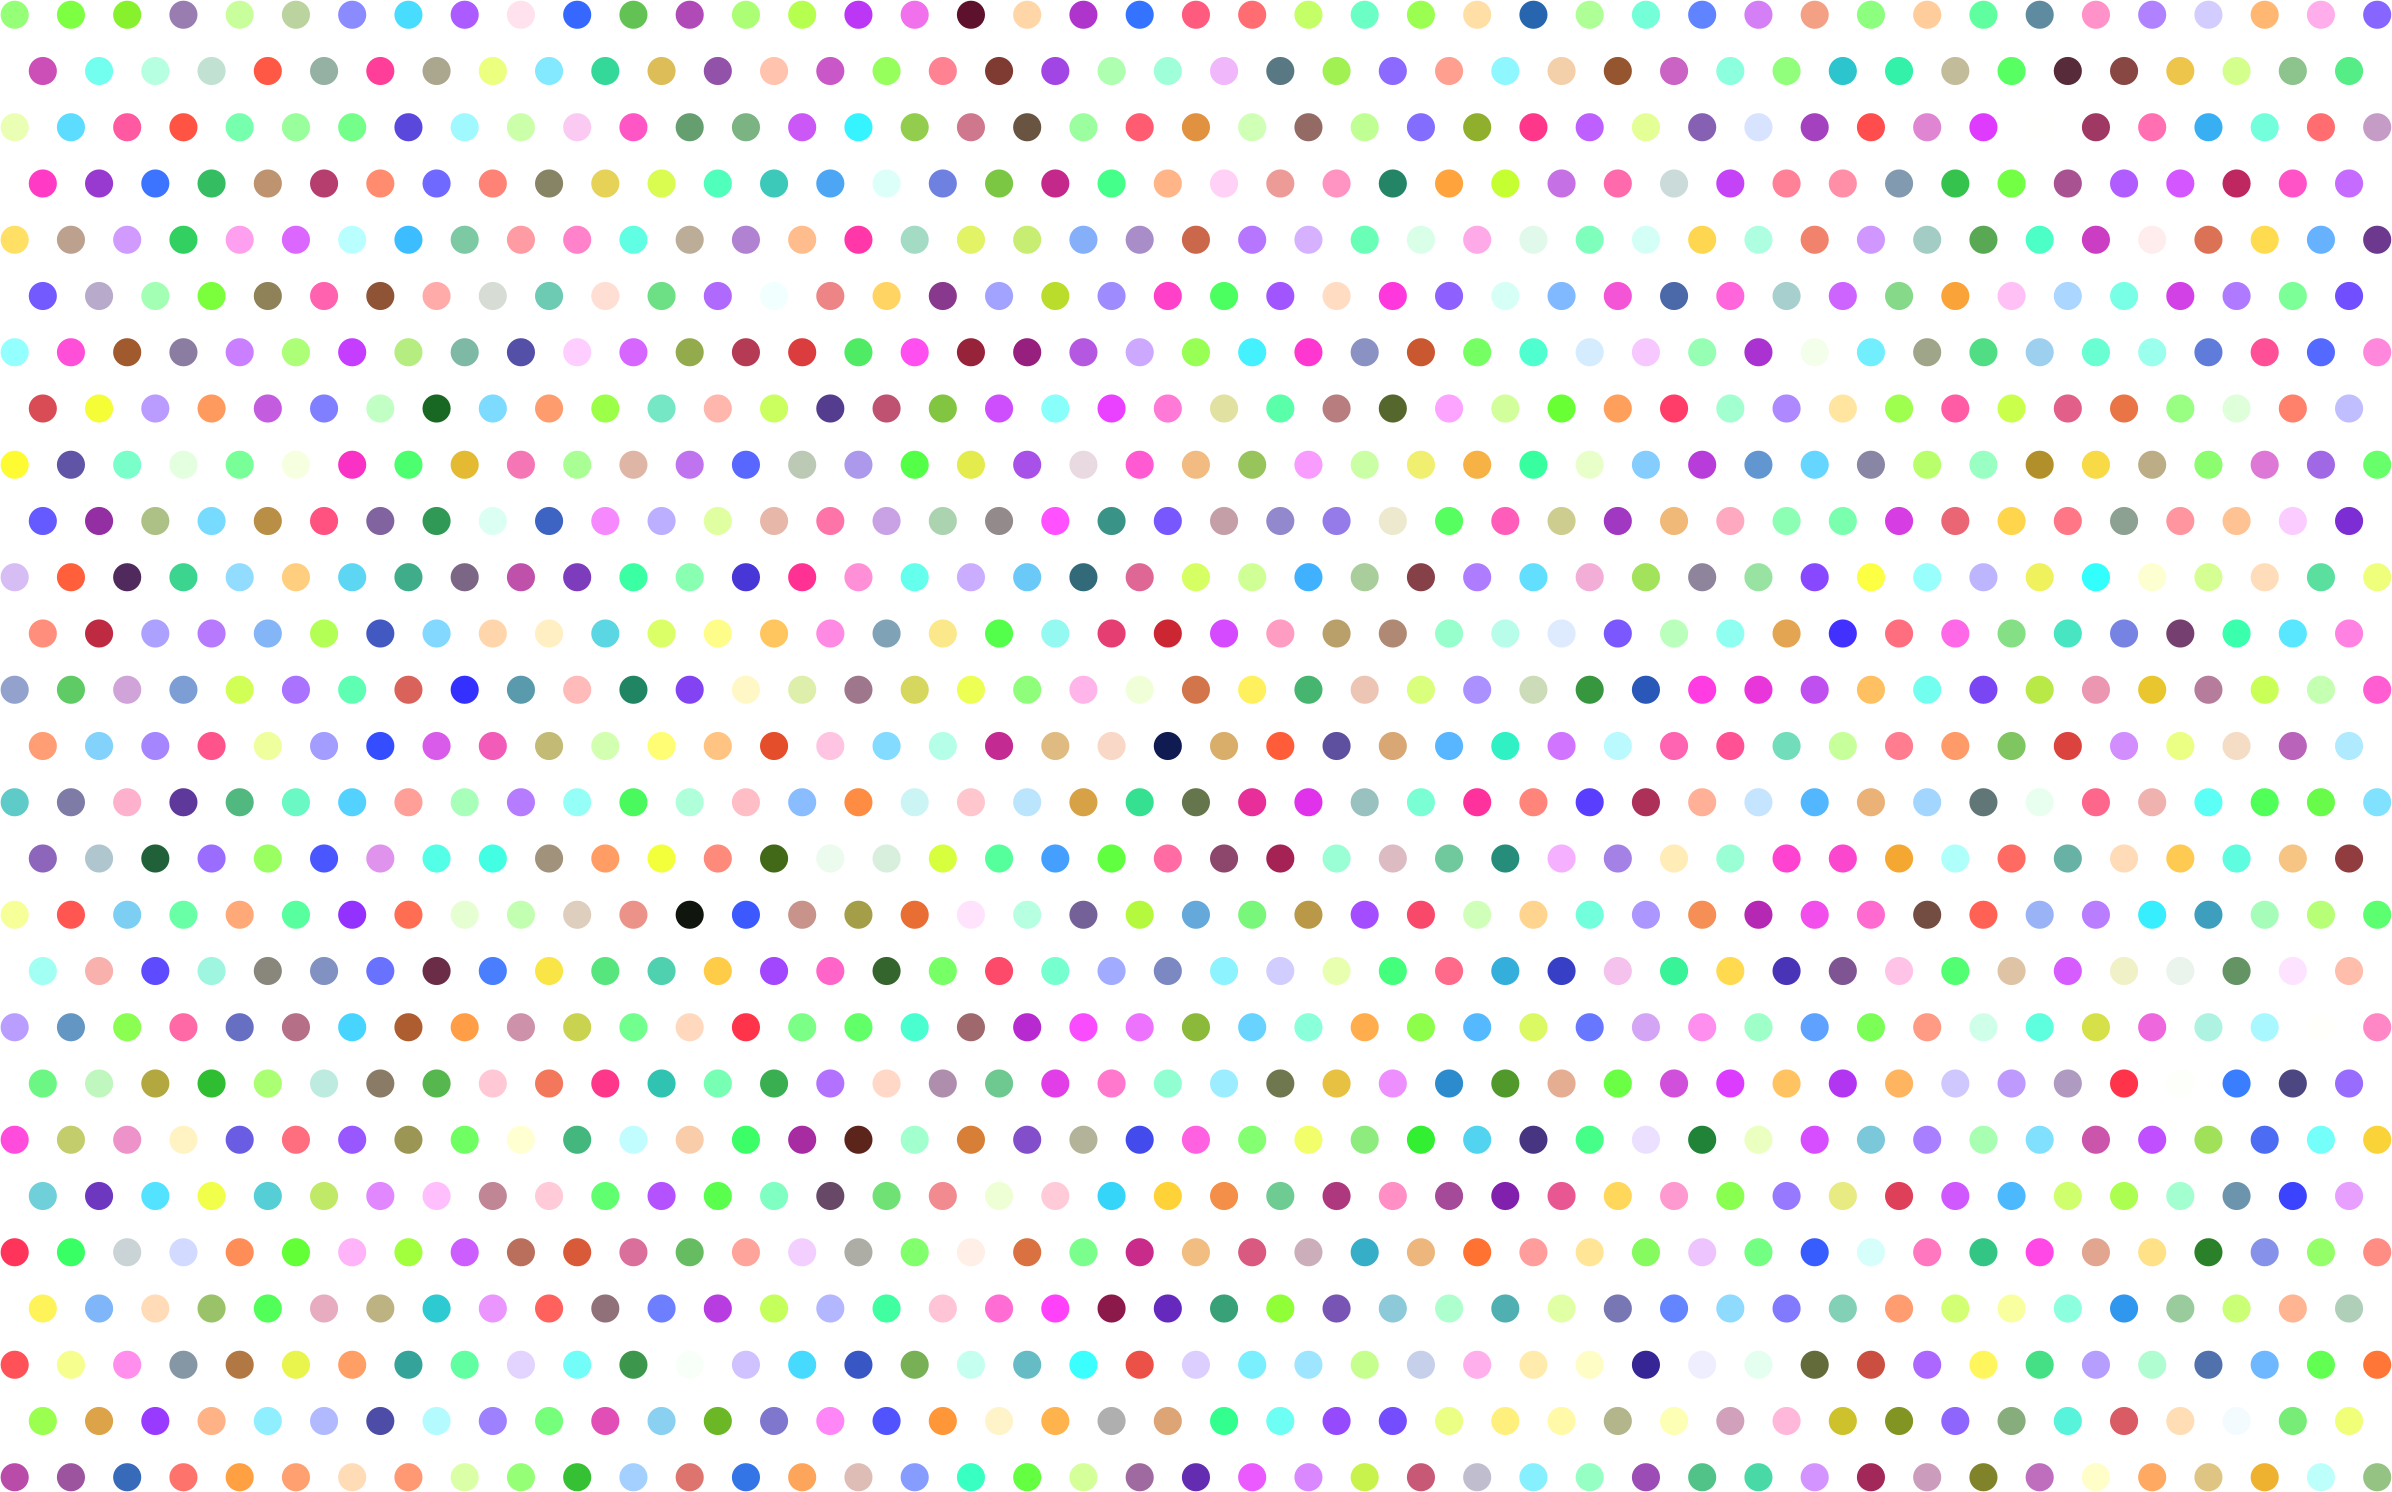 Gold polka dot background png. Transparent images this free